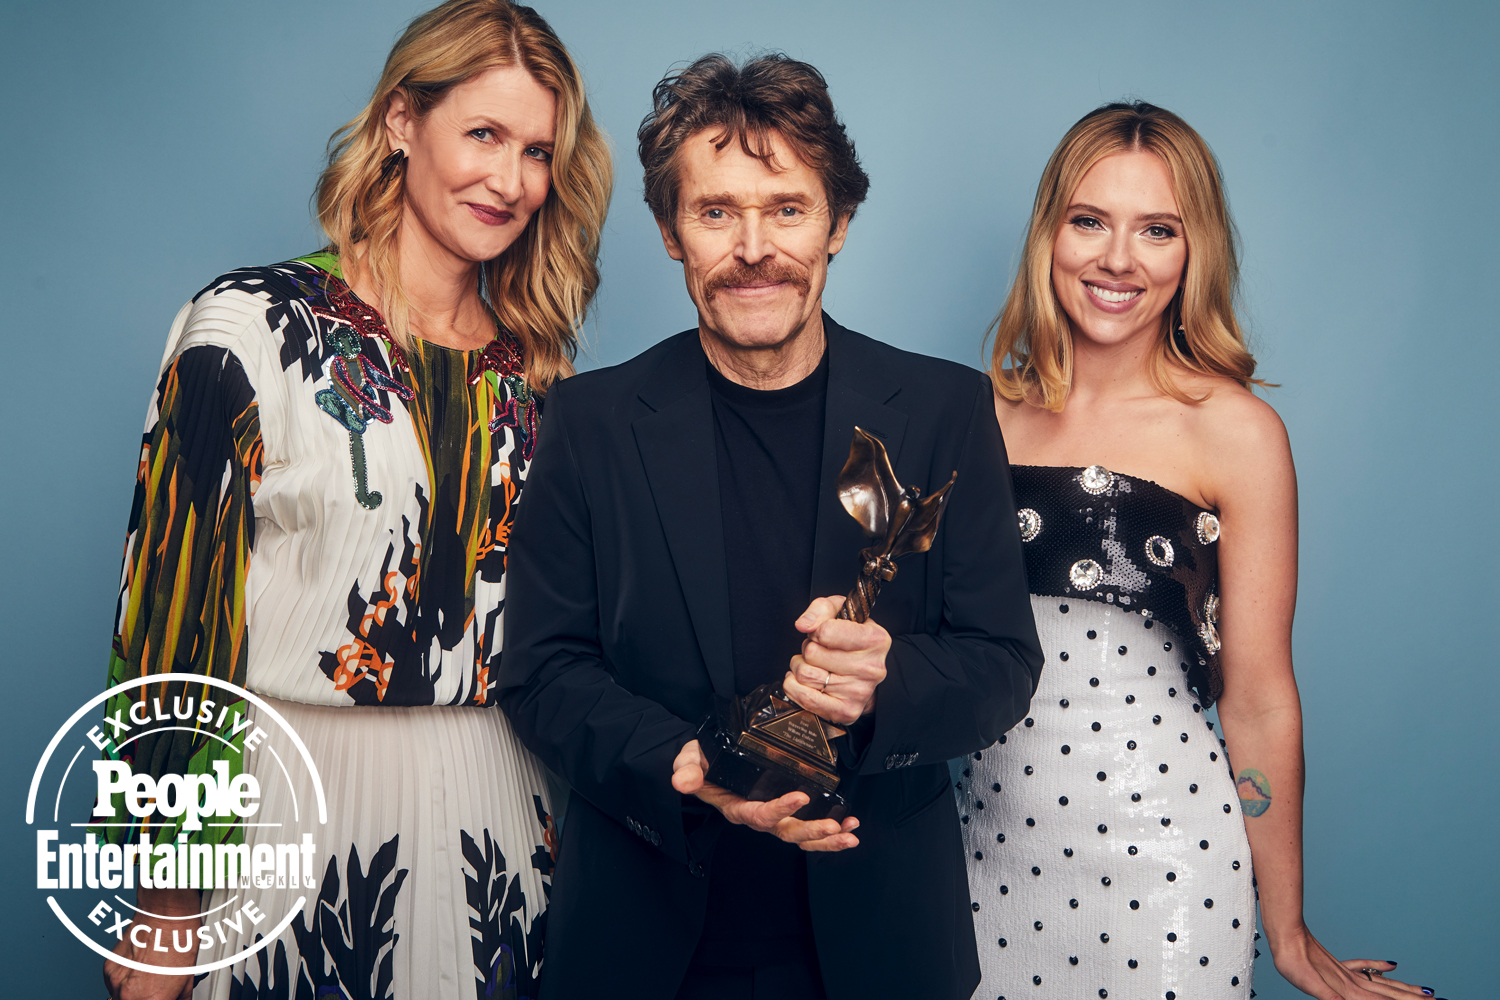 Laura Dern, Willem Dafoe, and Scarlett Johansson